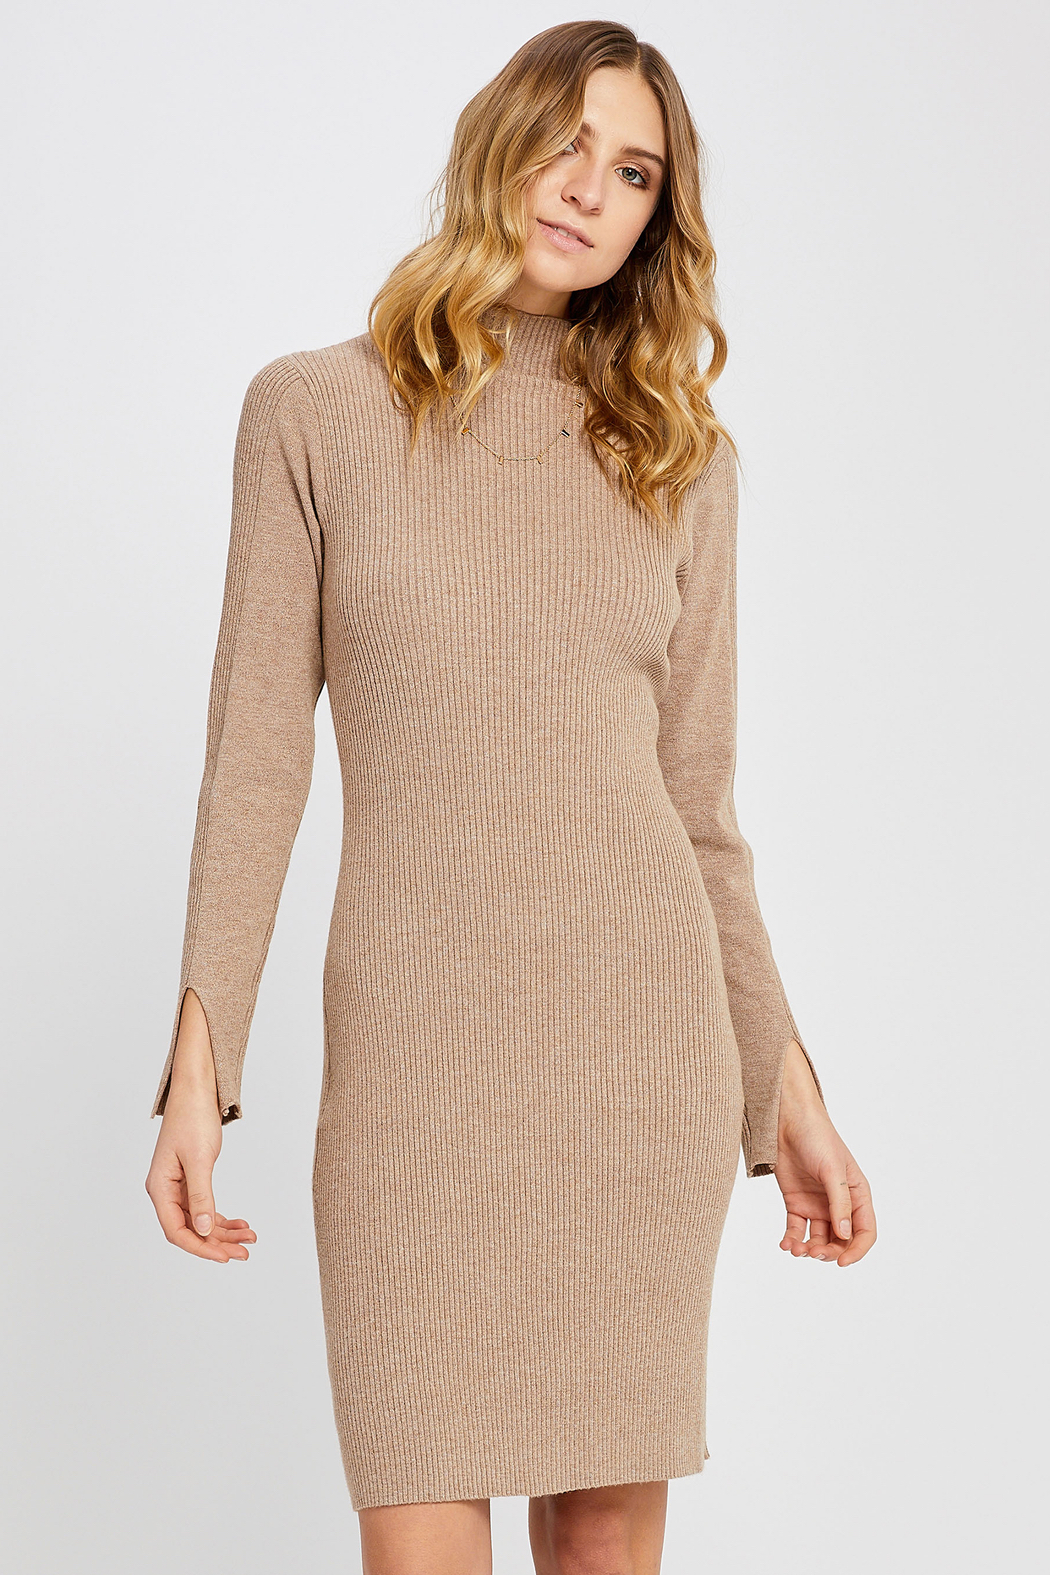 Gentle Fawn Inglewood Sweater Dress - Main Image